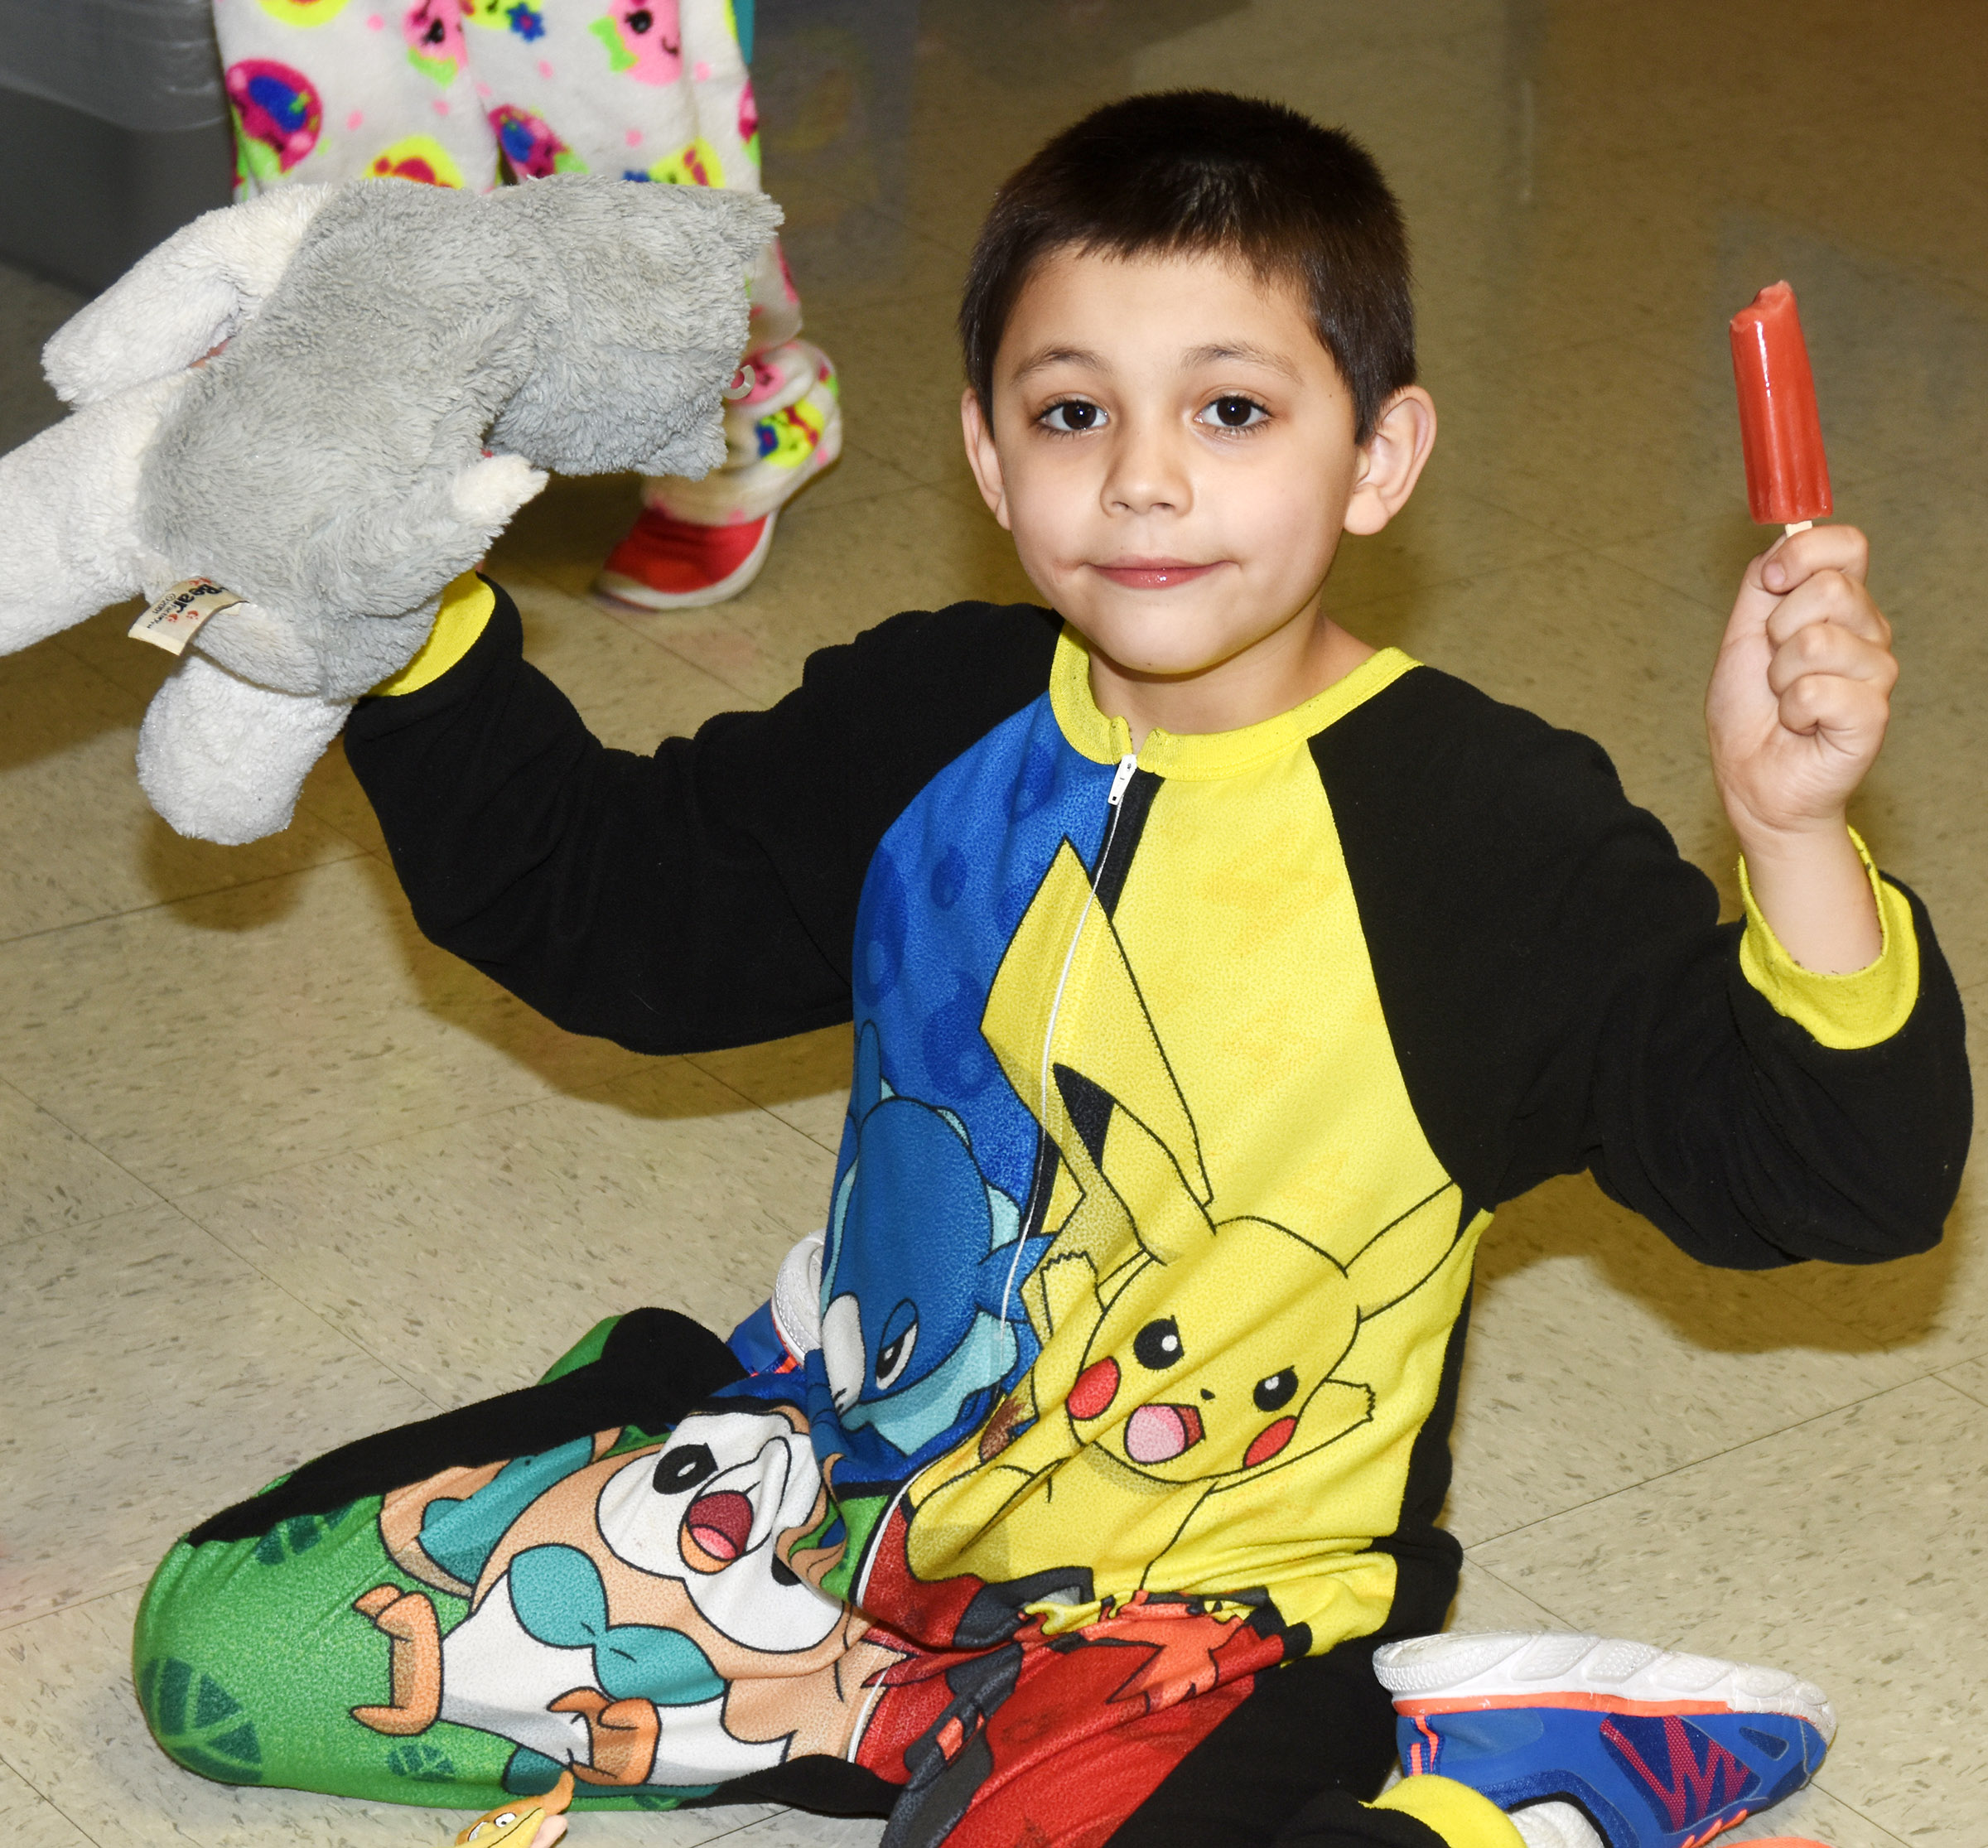 CES first-grader Keagan Shearer eats his Popsicle while wearing his pajamas.